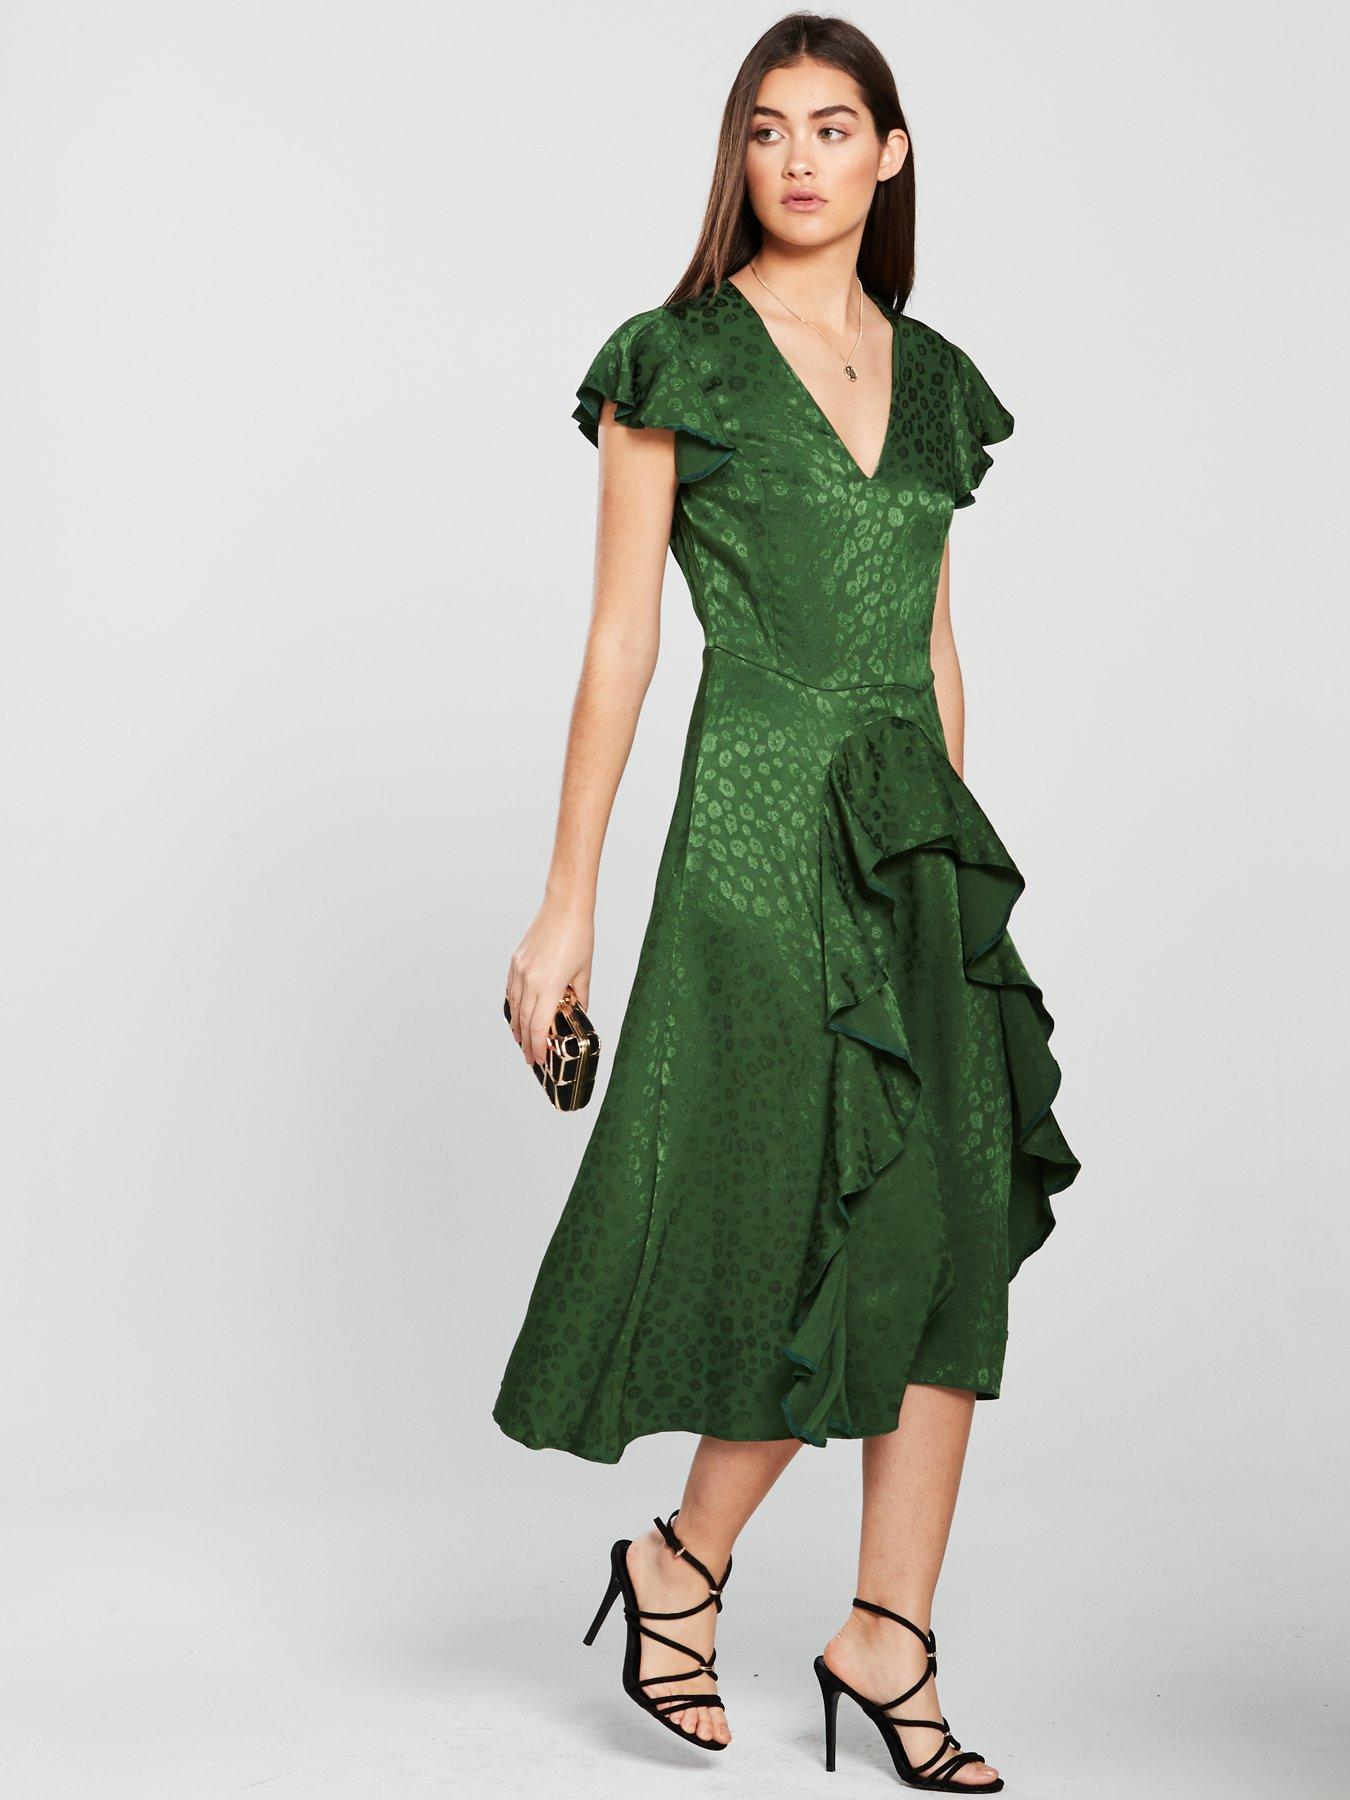 Summer Dresses Clearance